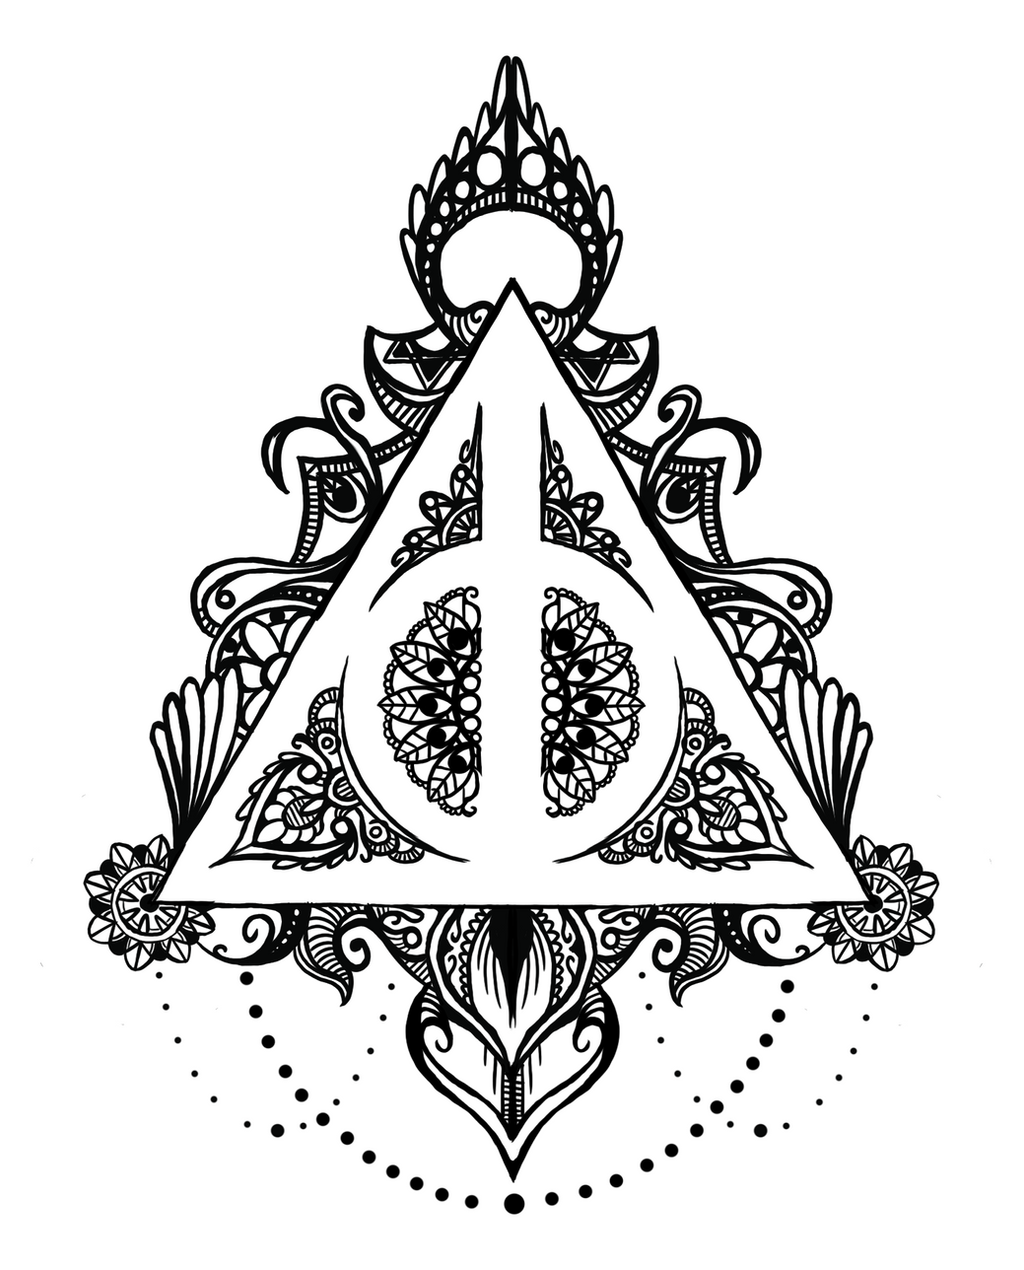 Deathly hallows mandala by midlifebeef51 on deviantart deathly hallows mandala by midlifebeef51 deathly hallows mandala by midlifebeef51 biocorpaavc